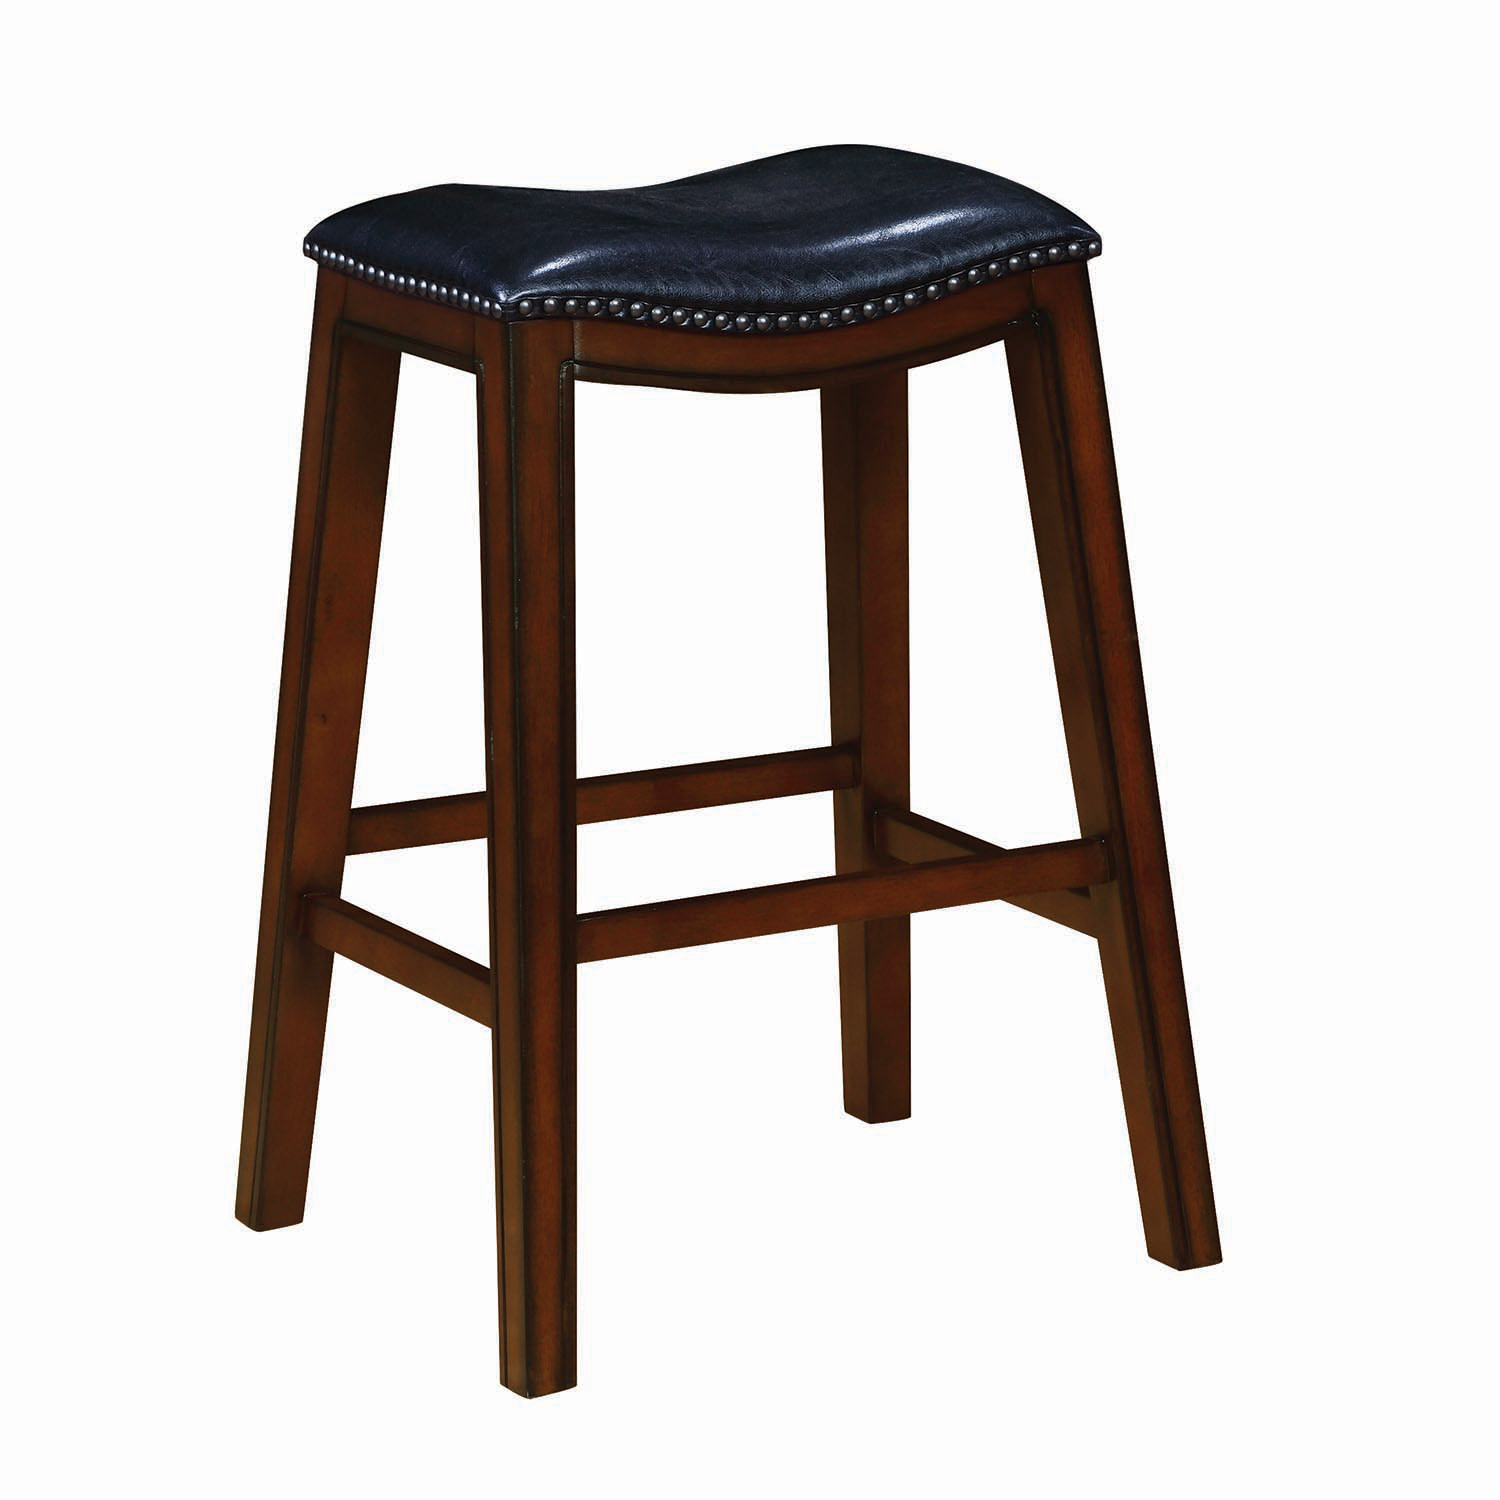 Coaster 122262 Bar Stool - Burnished Cappuccino